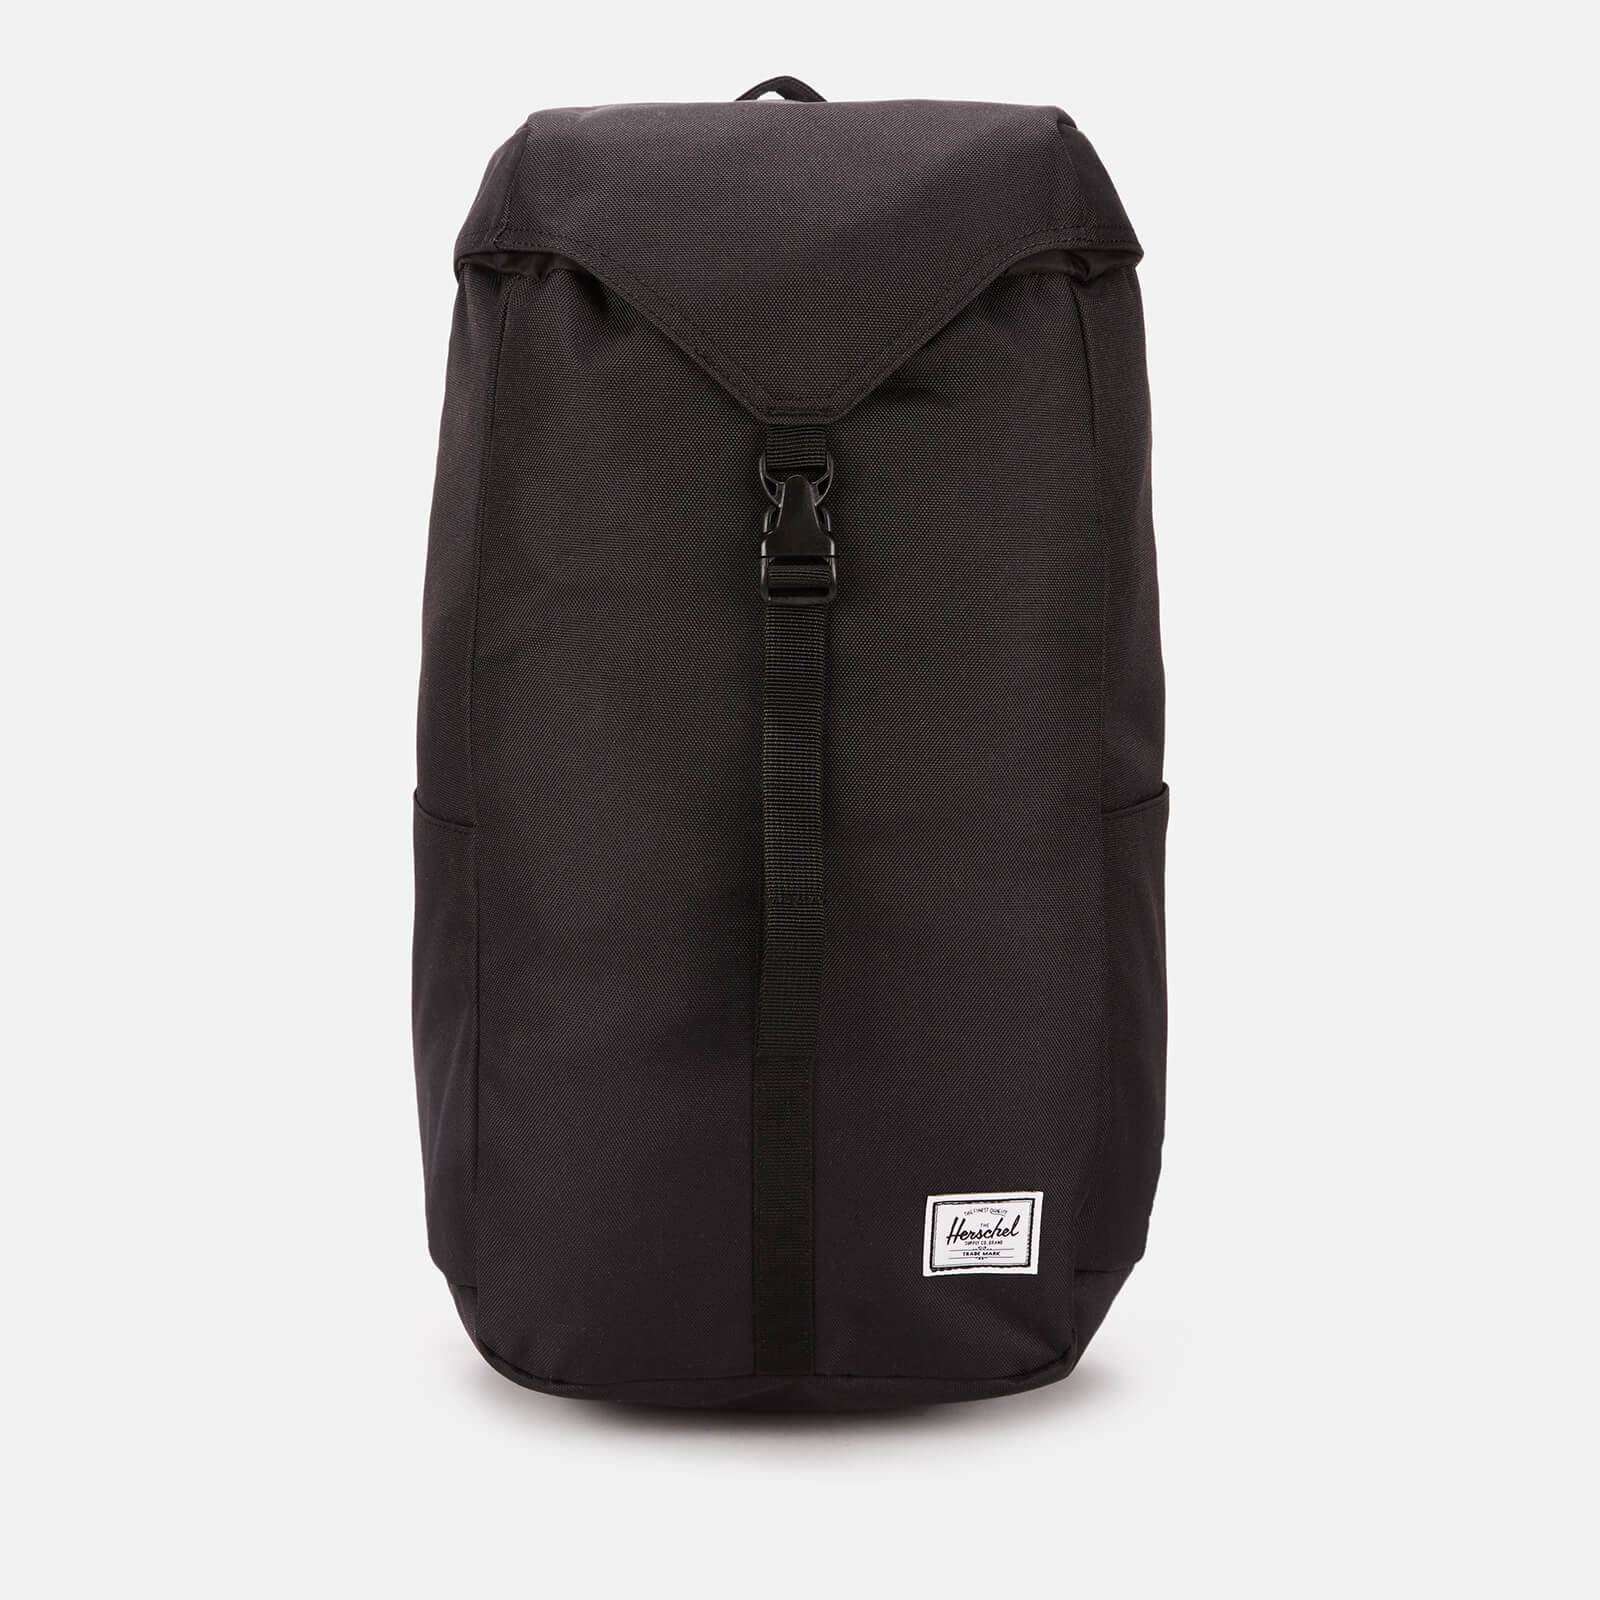 Herschel Supply Co. Men's Thompson Backpack - Black